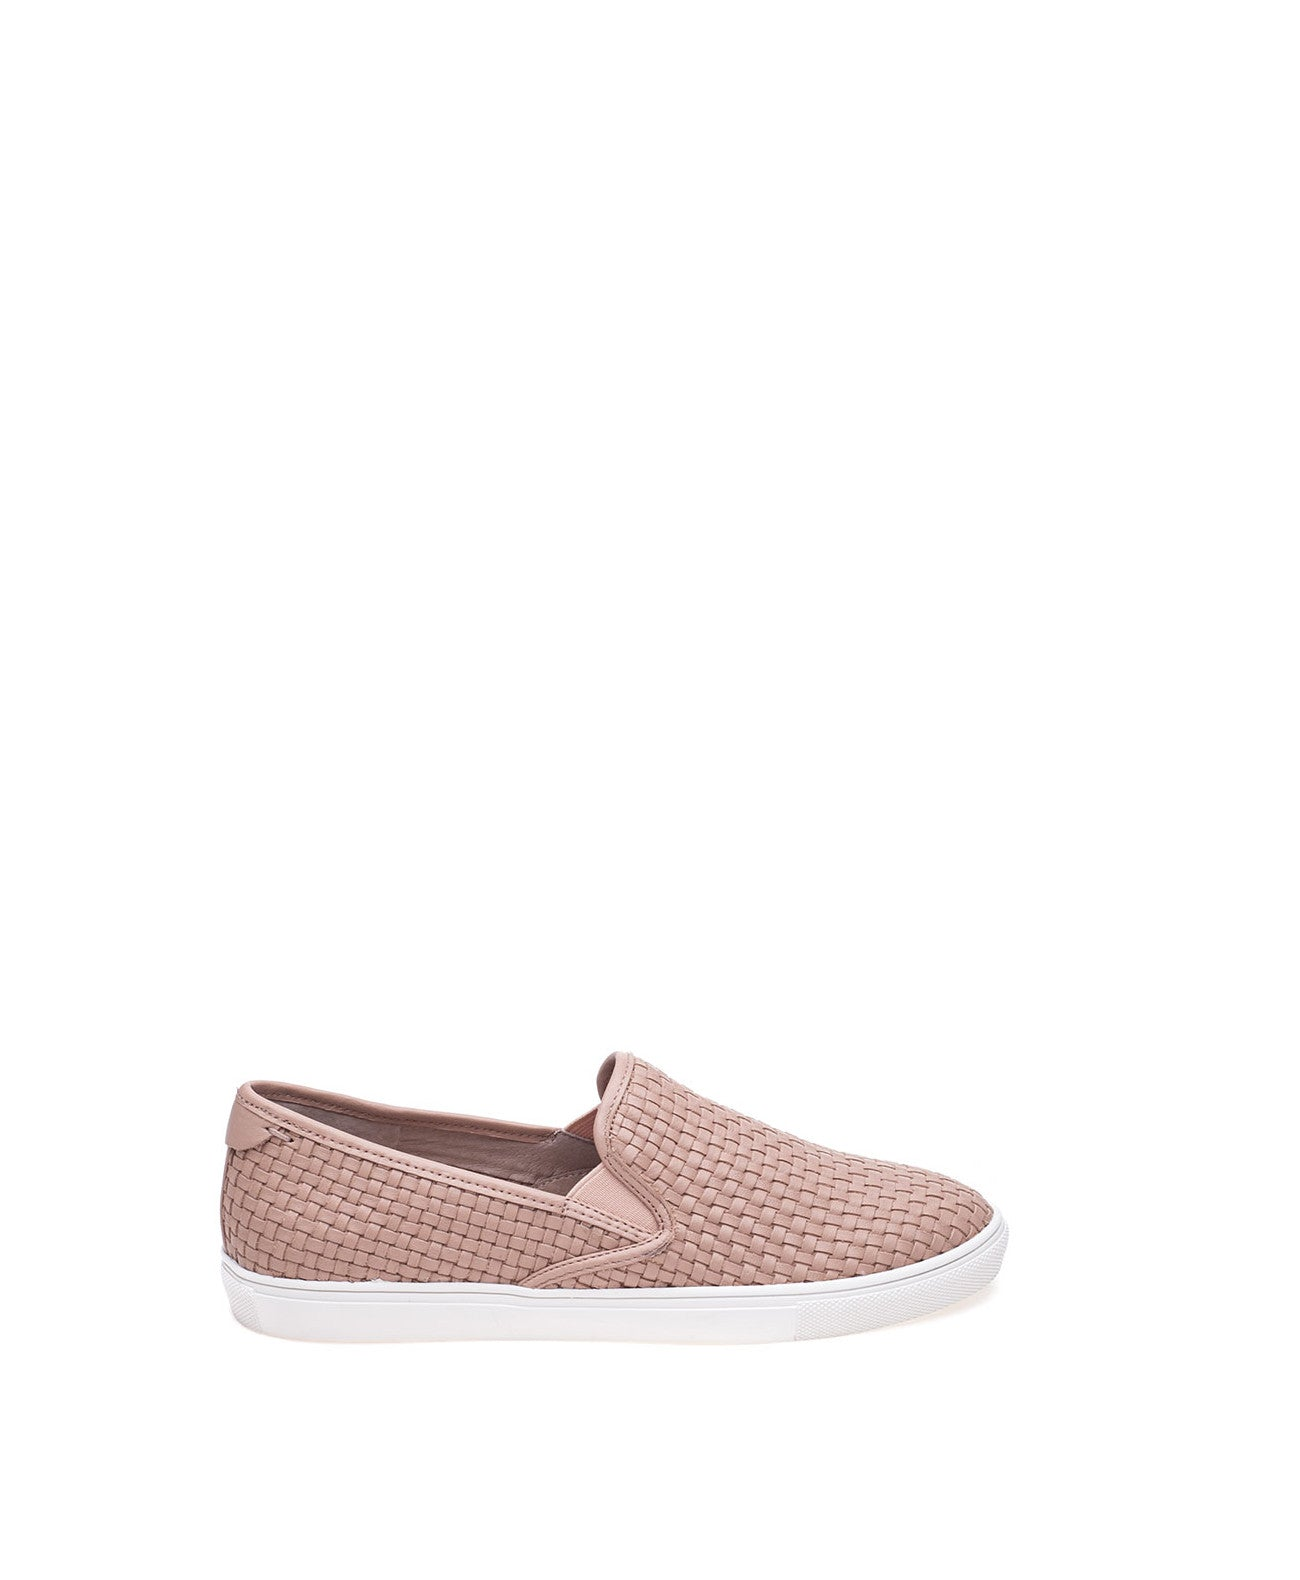 Calina_blush J Slides Calina